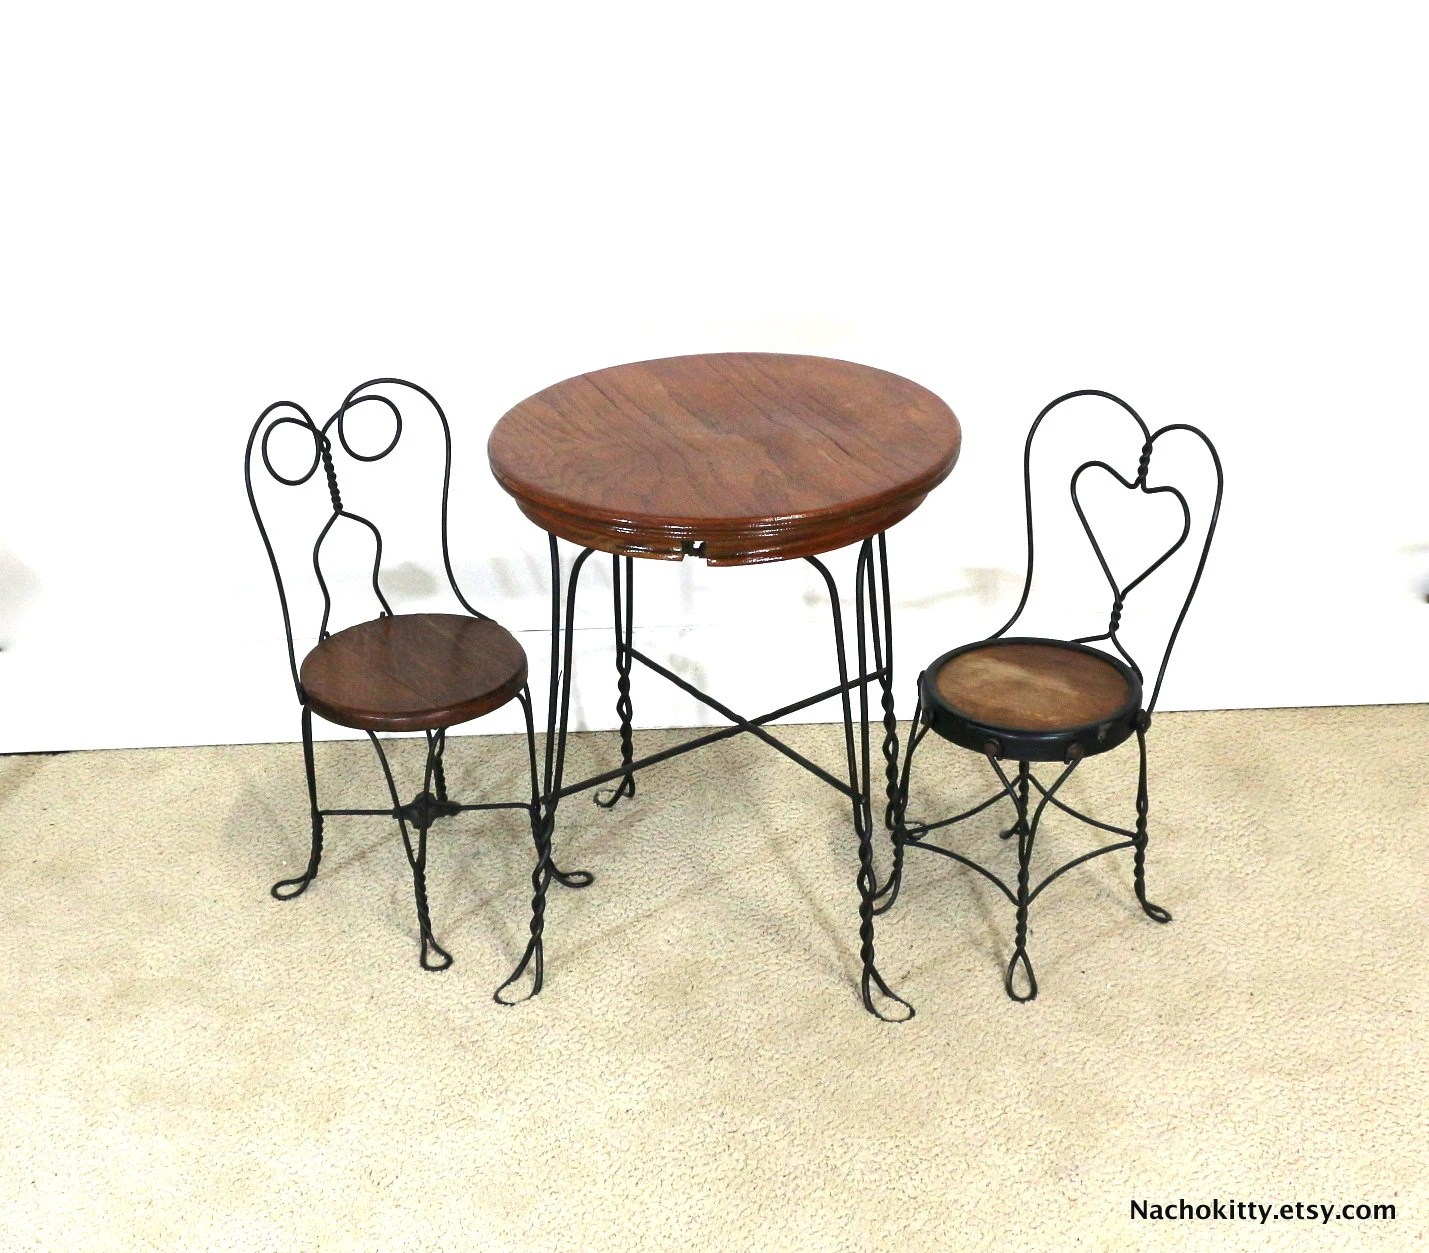 ice cream table and chairs dining chair styles chart 1940s parlor childs set wood by